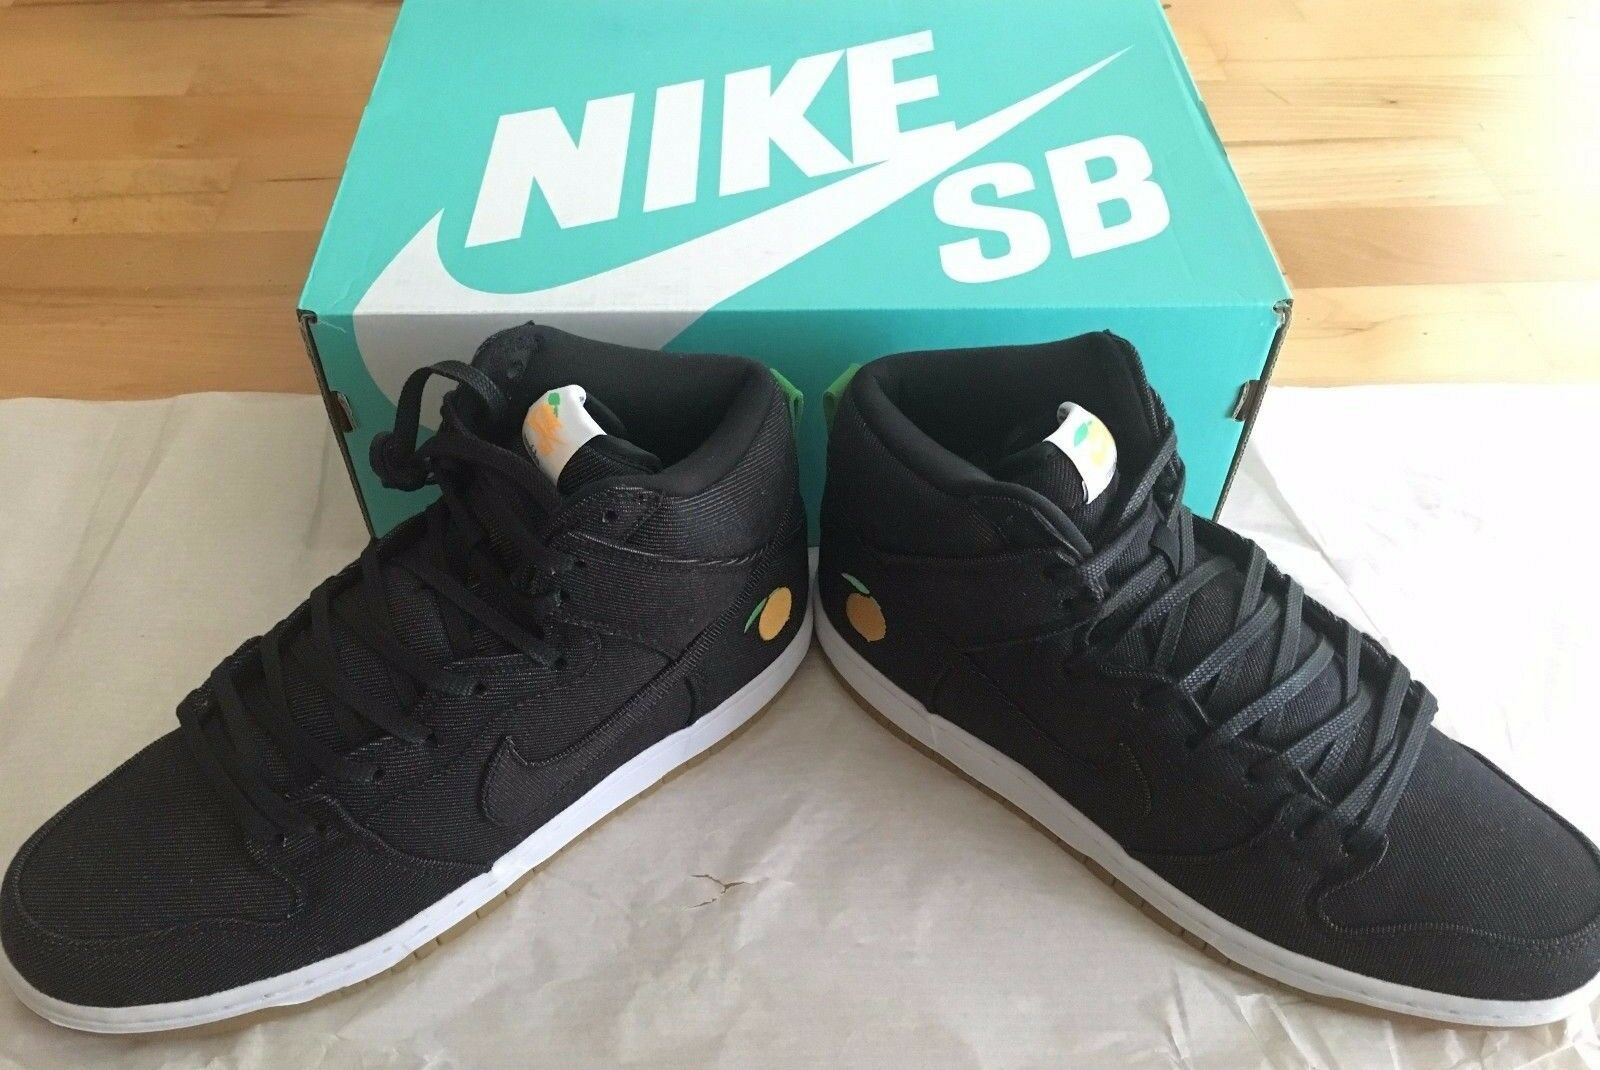 Nike SB Dunk Hi x Momofuku New shoes for men and women, limited time discount